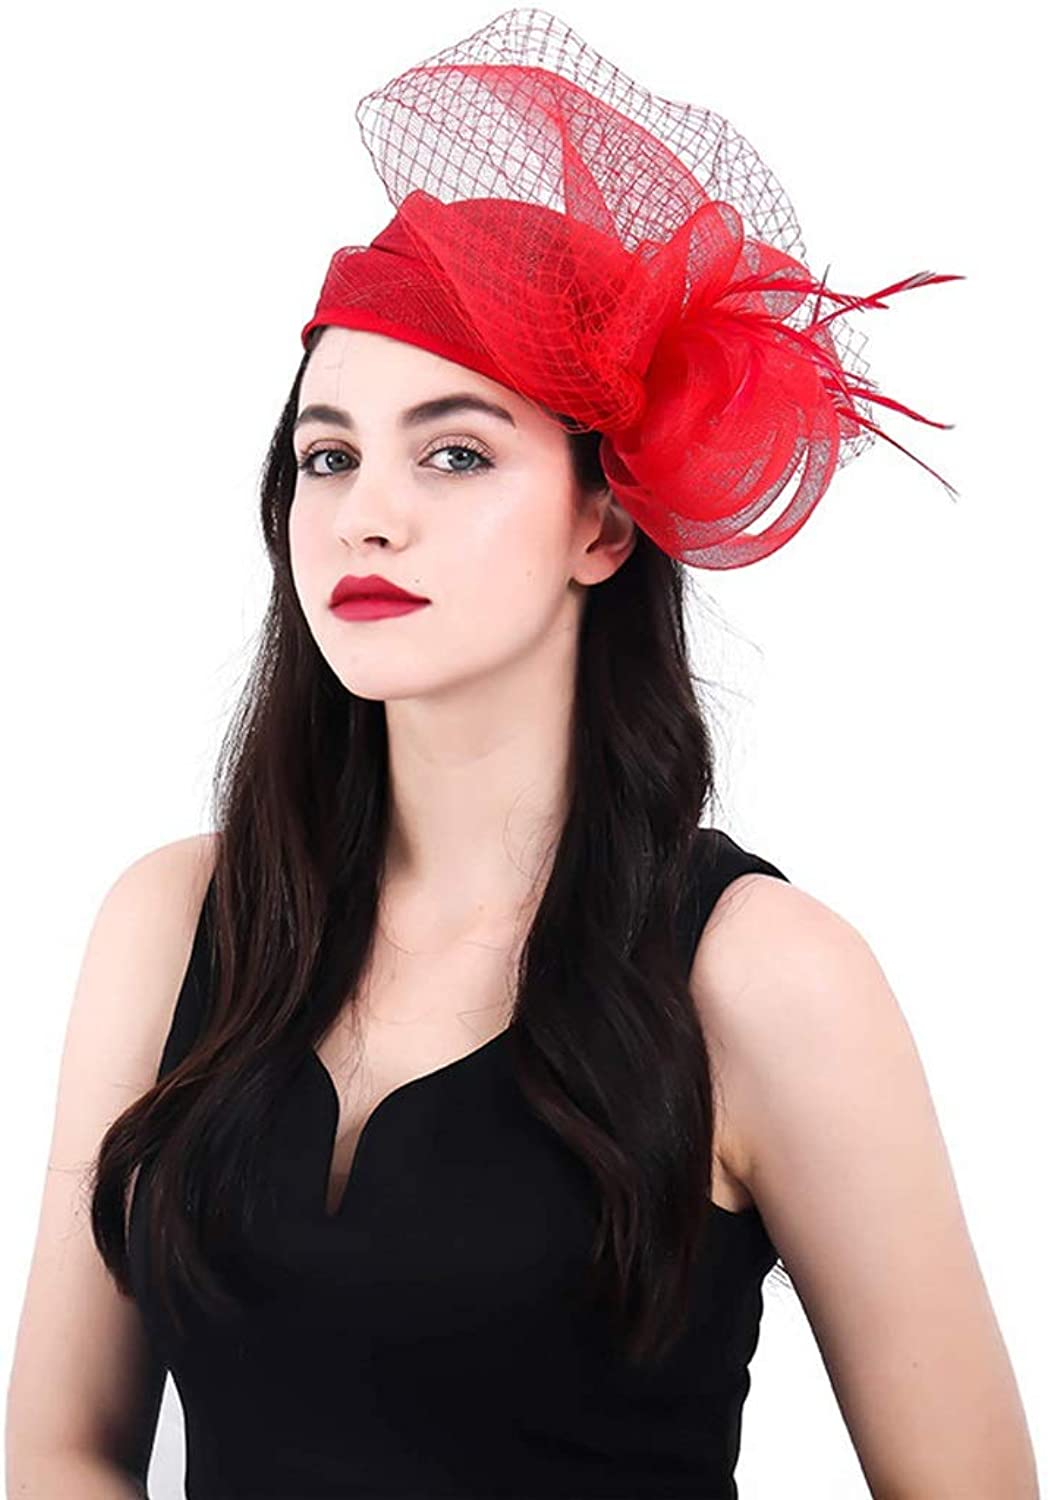 AO Handmade Aristocratic Highend Hemp Tiara Bridal Veil Hair Accessories British Retro Bowler Hat for Female (color   Red)